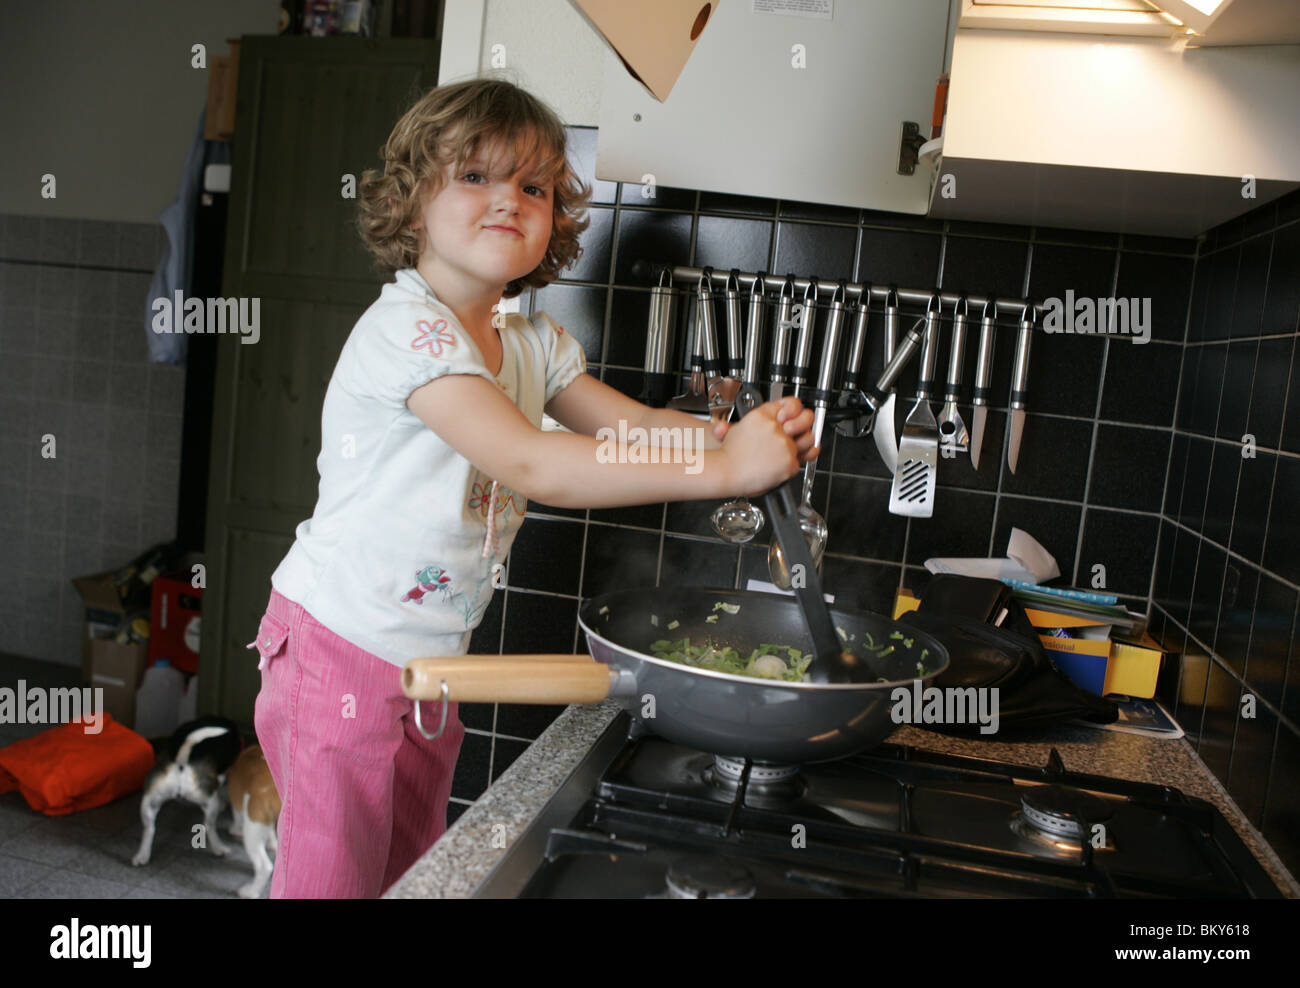 Child in kitchen cooking - Stock Image